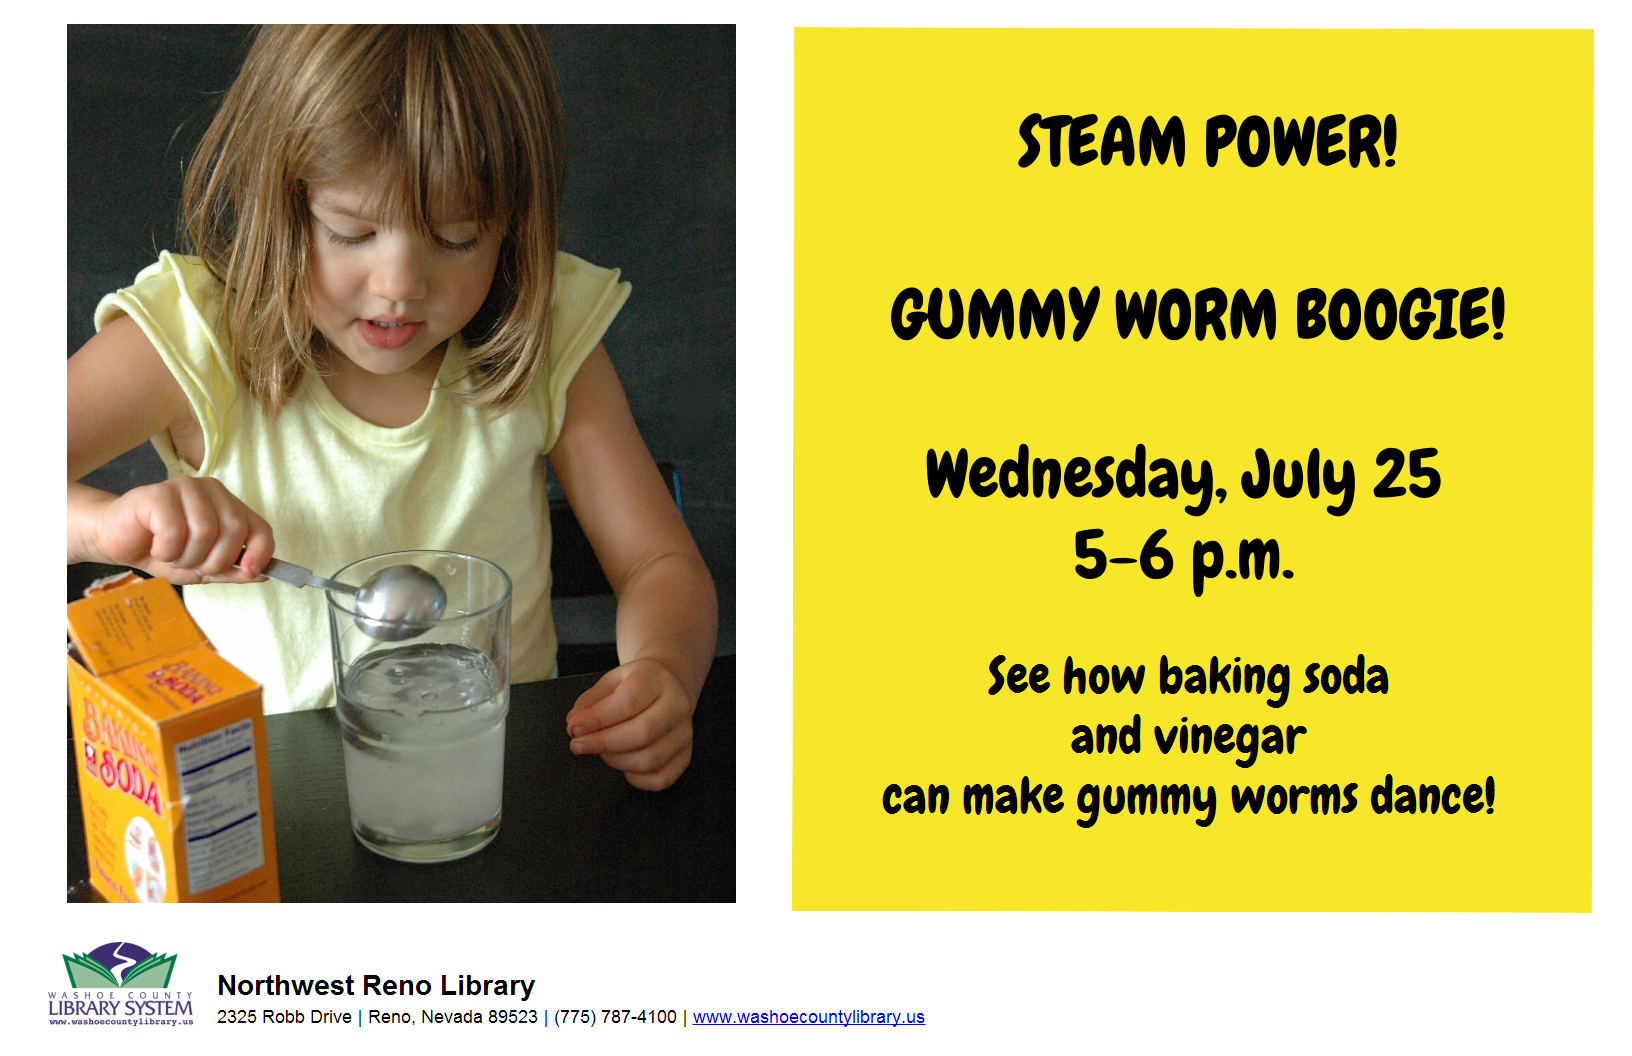 STEAM POWER: Gummy Worm Boogie!